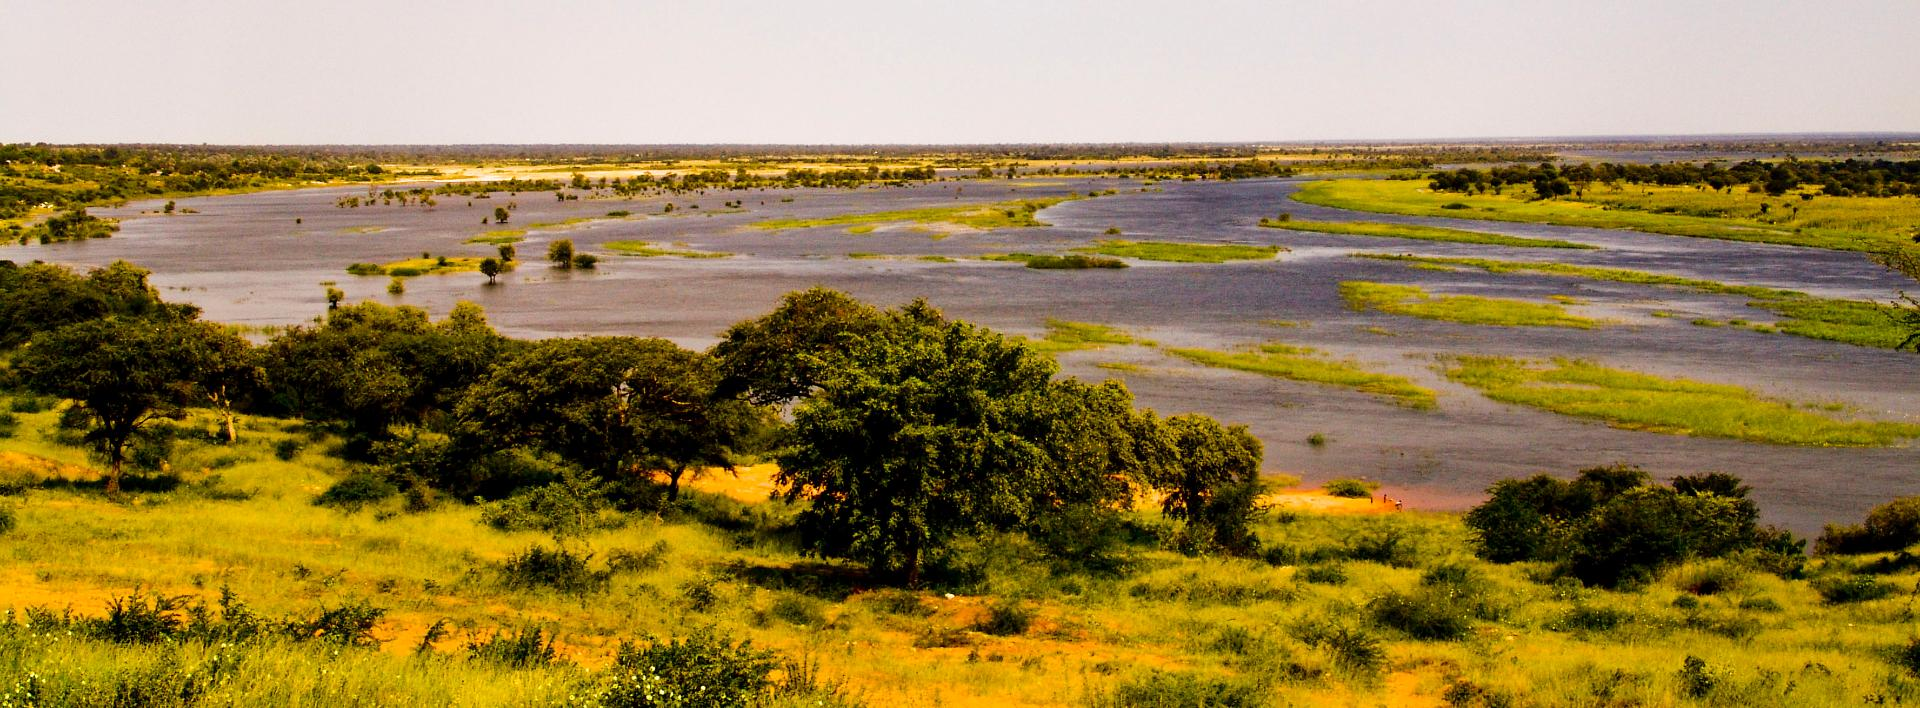 North-East/Caprivi